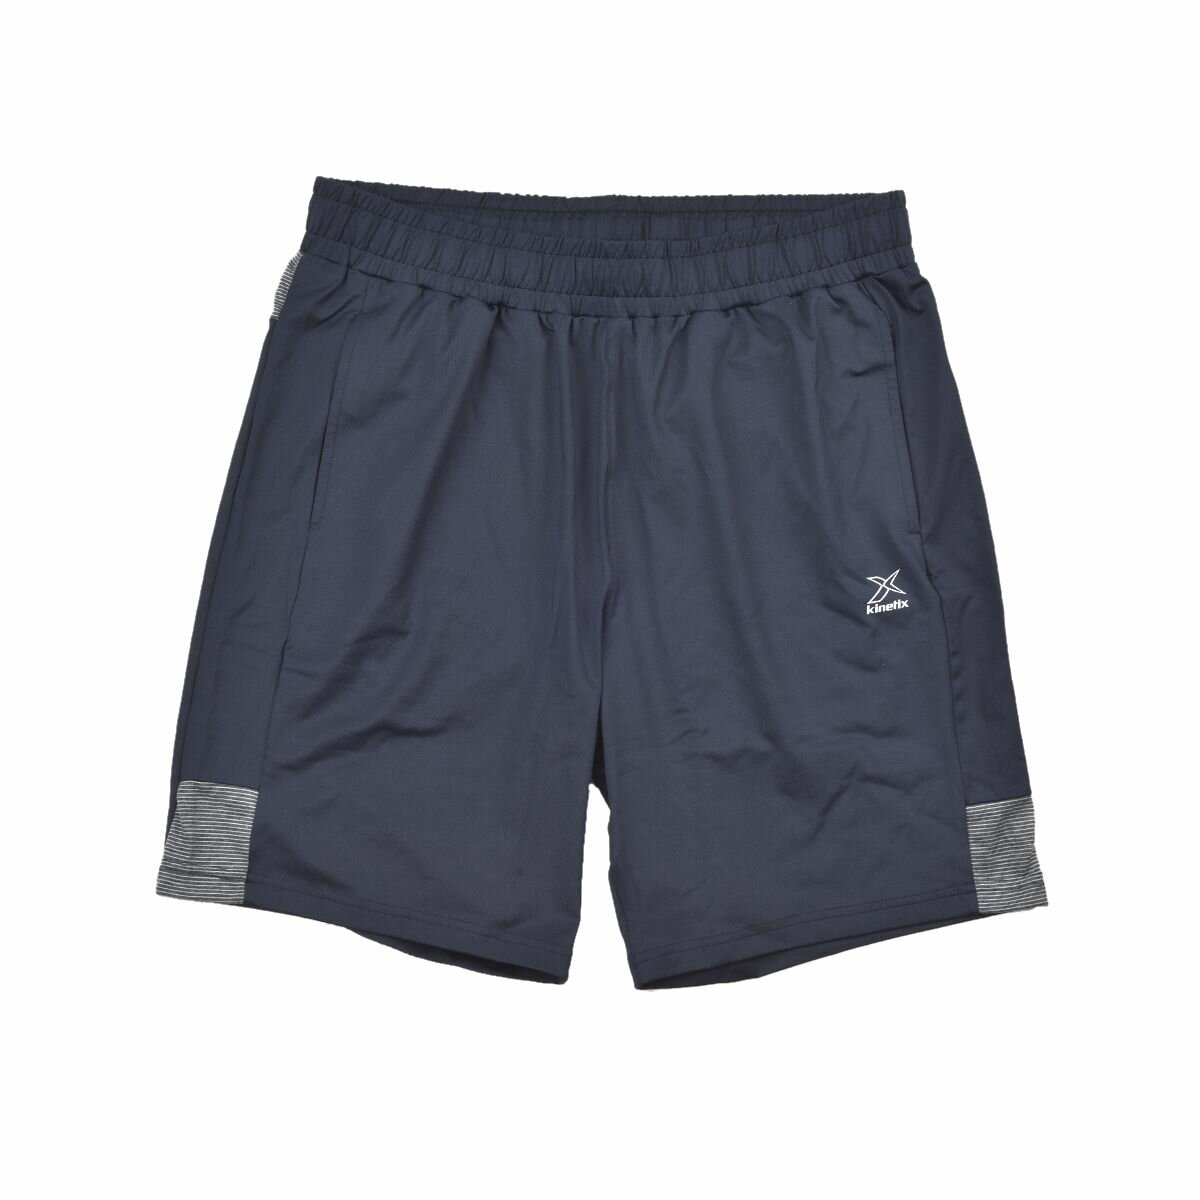 FLO FREDY SORT Navy Blue Men 'S Shorts KINETIX